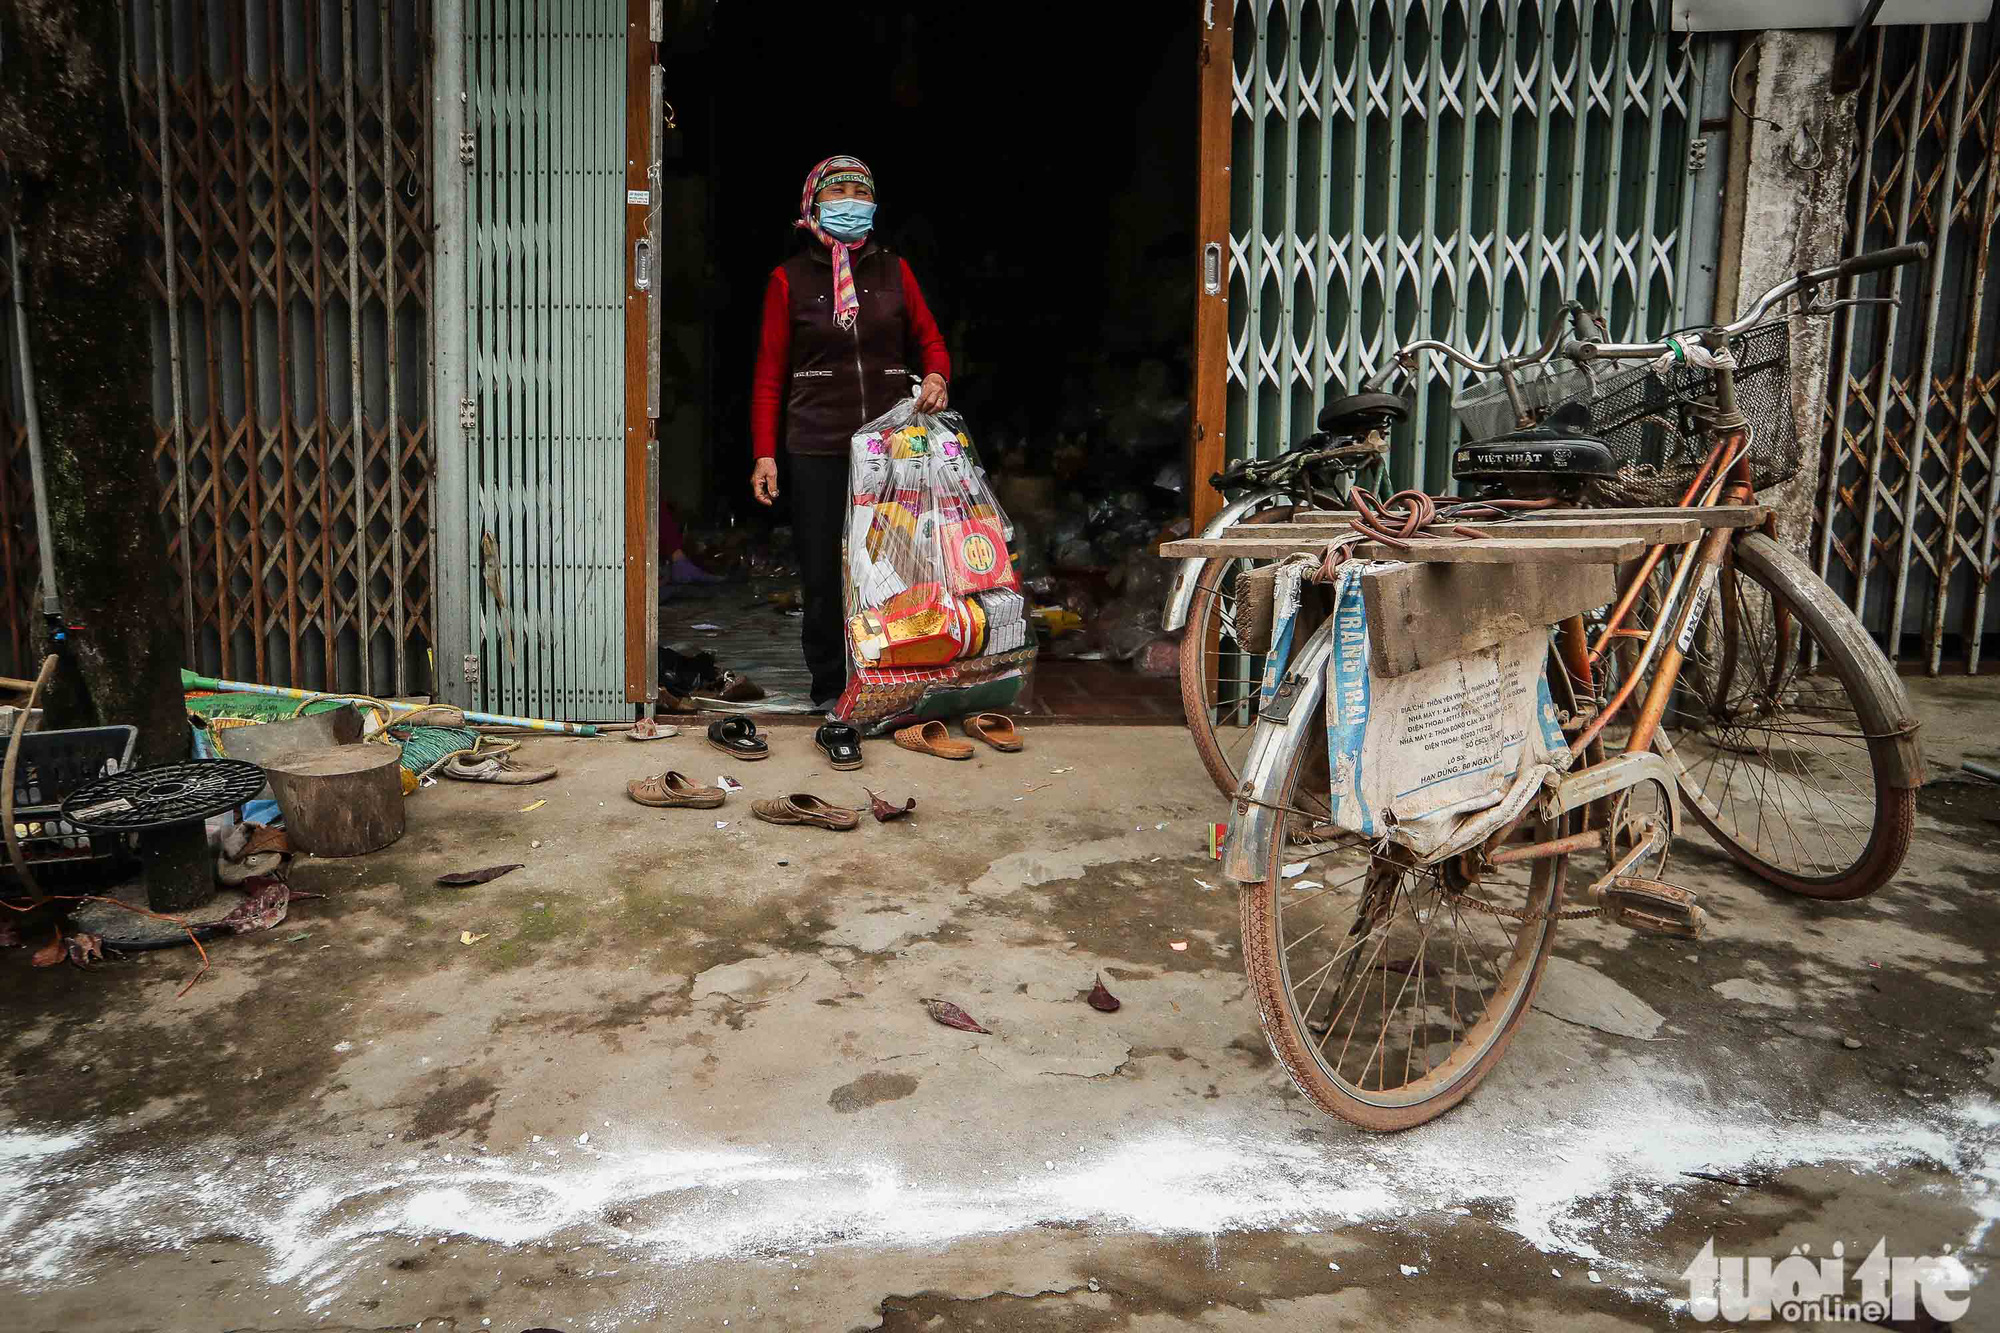 Pham Thi Trang, a resident in Ai Van Village in Son Loi Commune, Binh Xuyen District, Vinh Phuc Province, Vietnam, sprinkles calcium hydroxide in front of her house for disinfection on February 11, 2020. Photo: Nguyen Khanh / Tuoi Tre